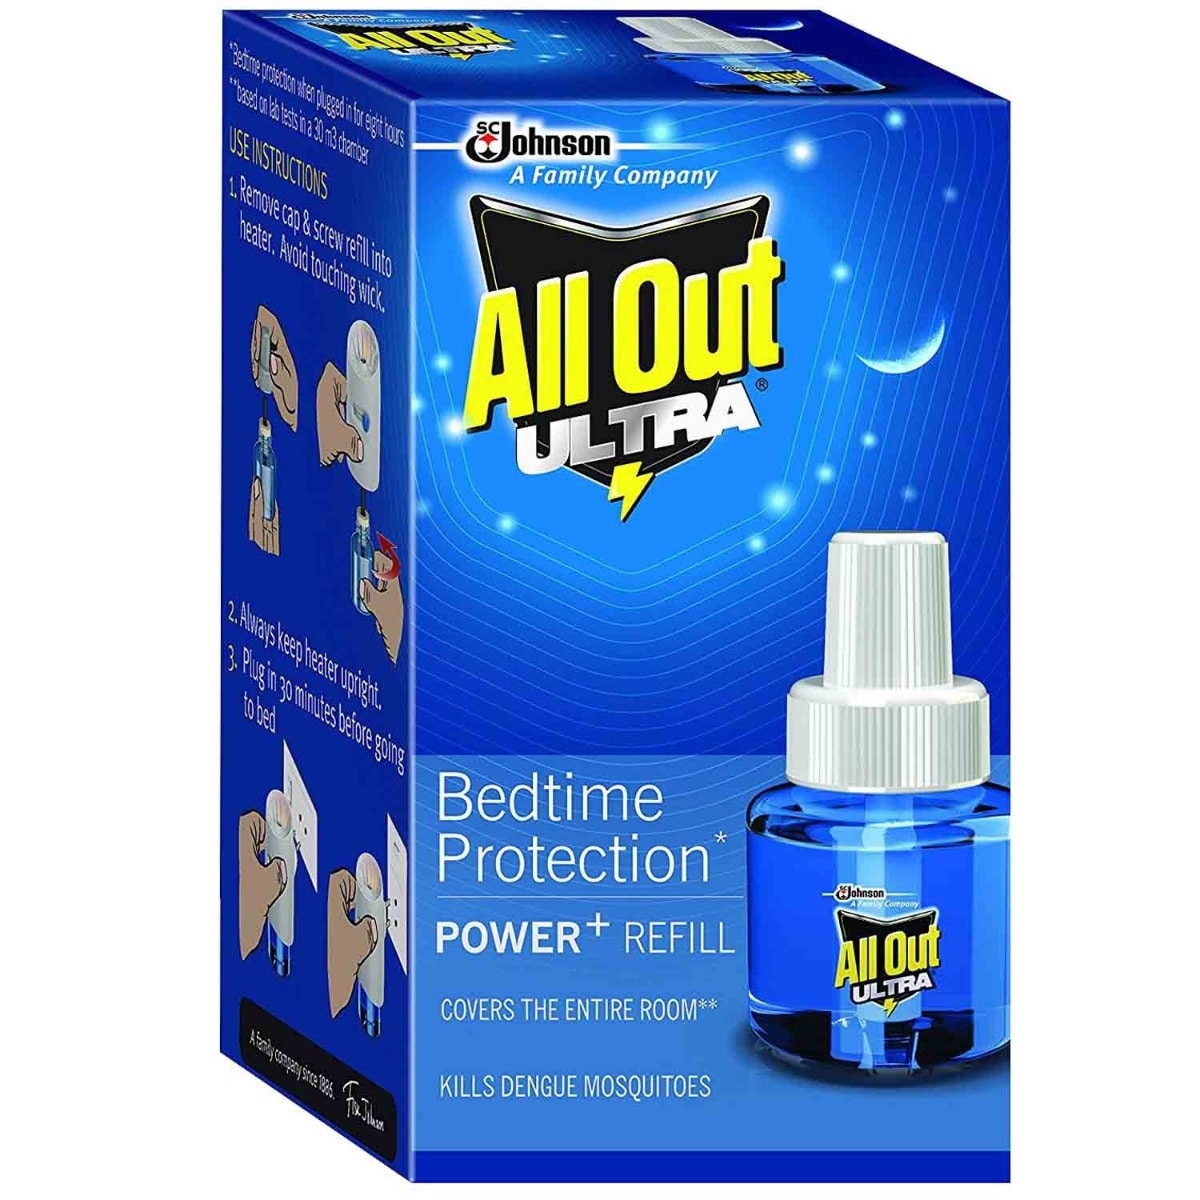 All Out Ultra Power+Refill, 1 kit, Pack of 1